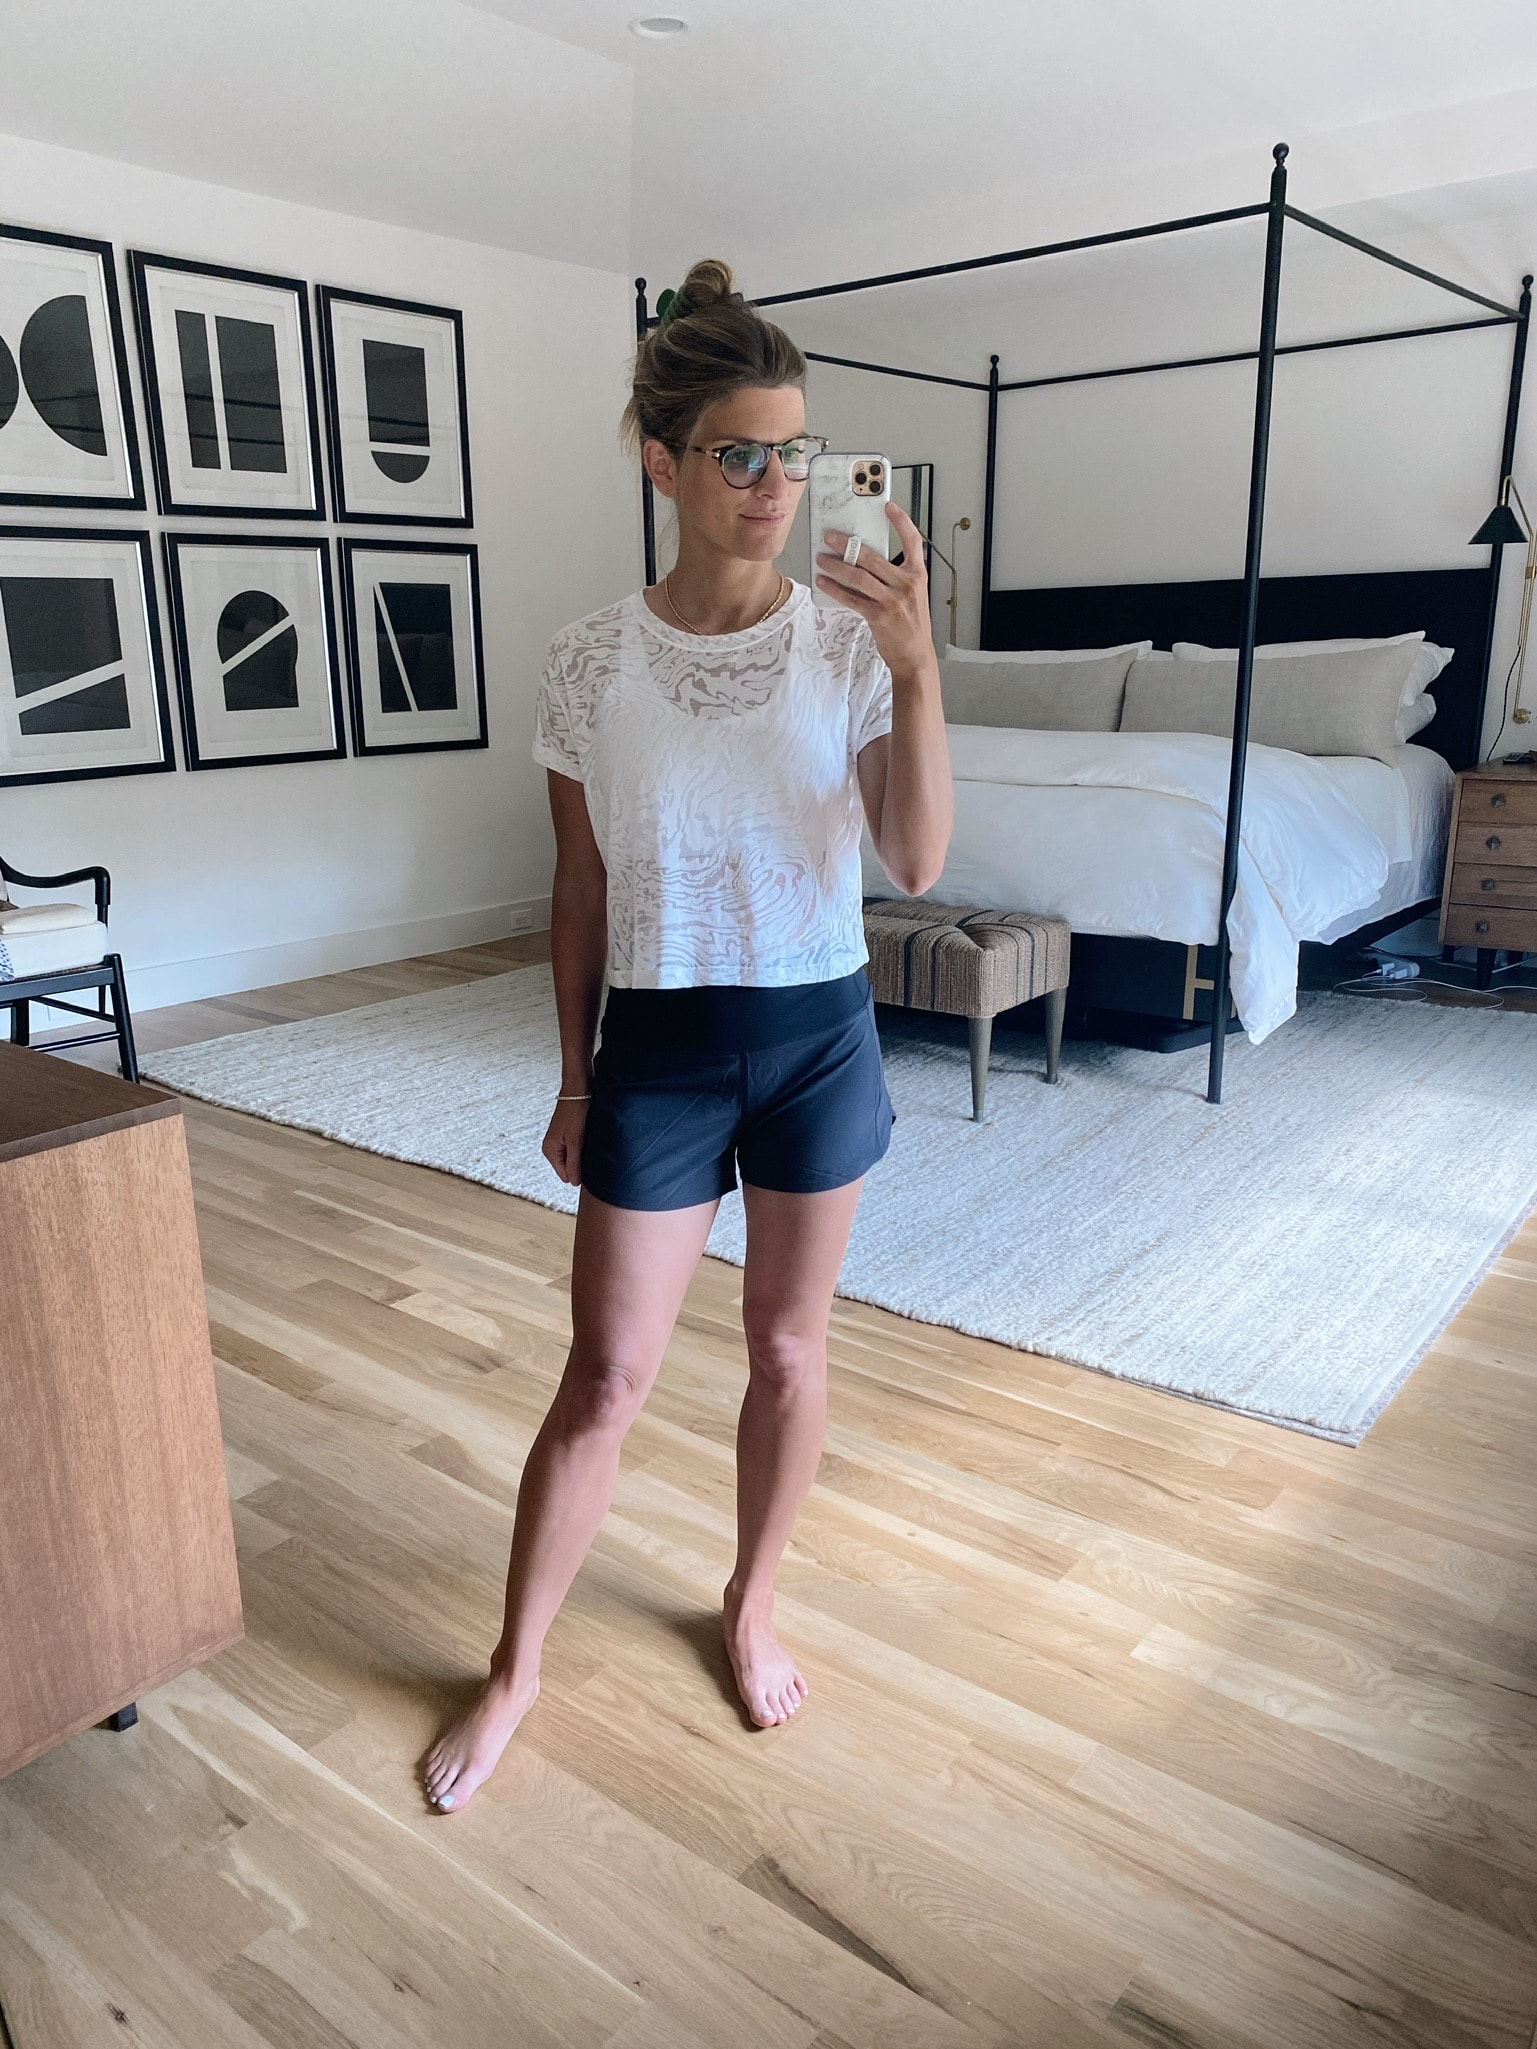 Brighton butler wearing Lululemon cates tee veil and high rise speed up shorts in black, workout outfit